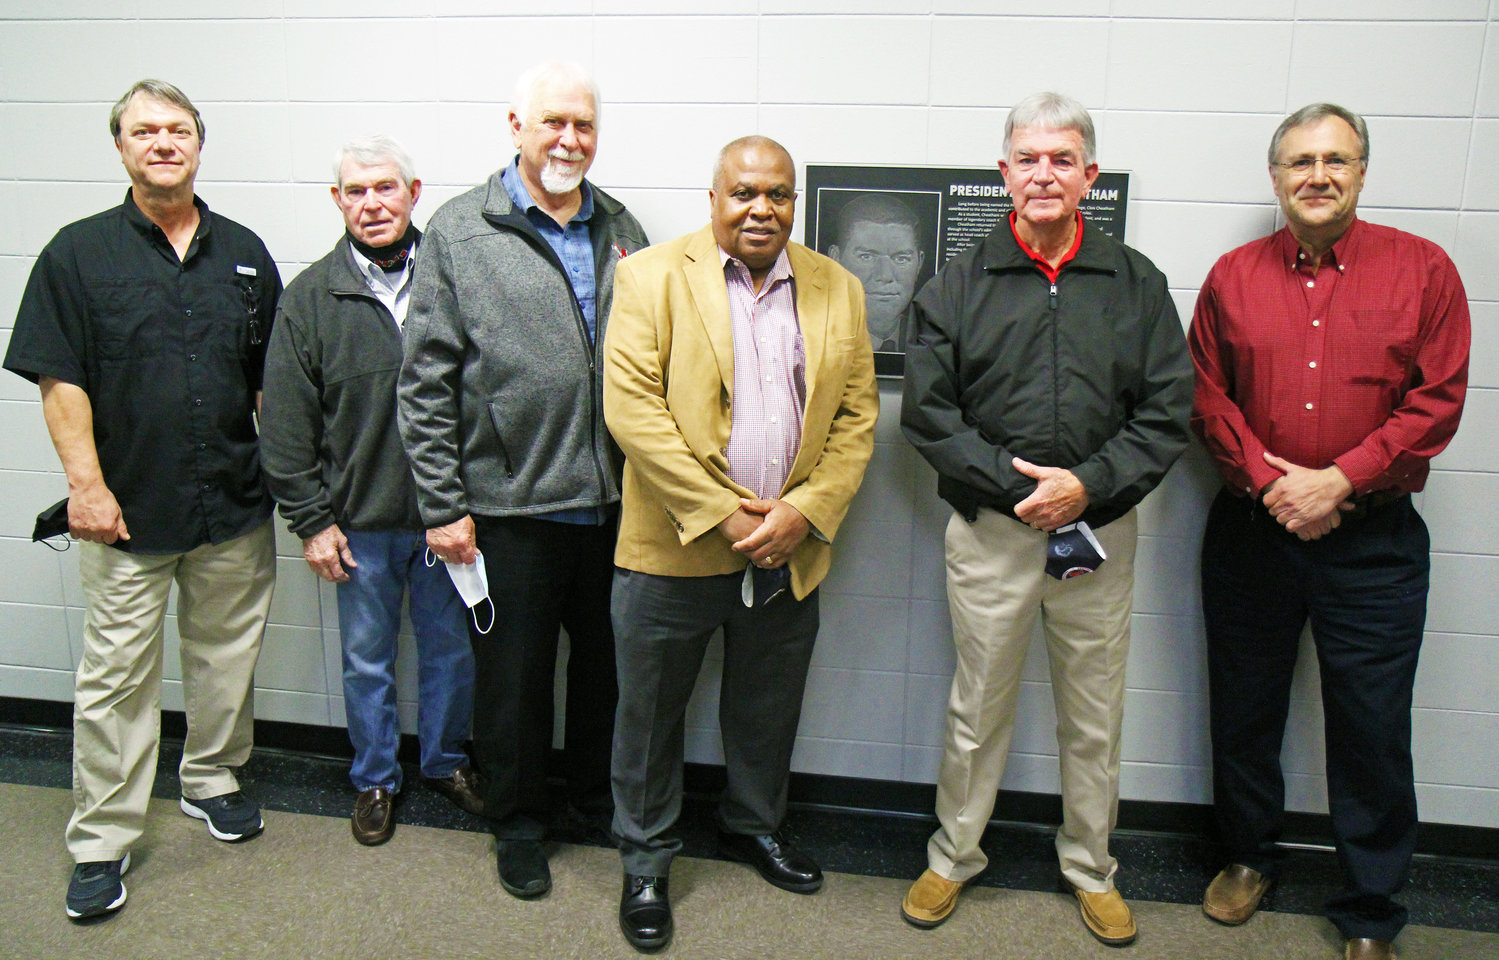 Sons Chris Cheatham (far left) and Brad Cheatham (far right) pose with EMCC Board of Trustees members on EMCC's Scooba campus Monday night after a plaque dedication honoring their father, former EMCC President Clois Cheatham. Board members pictured, from left, include Bubba Davis, Jimmie Moore, Ed Mosley and Bobby McDade.